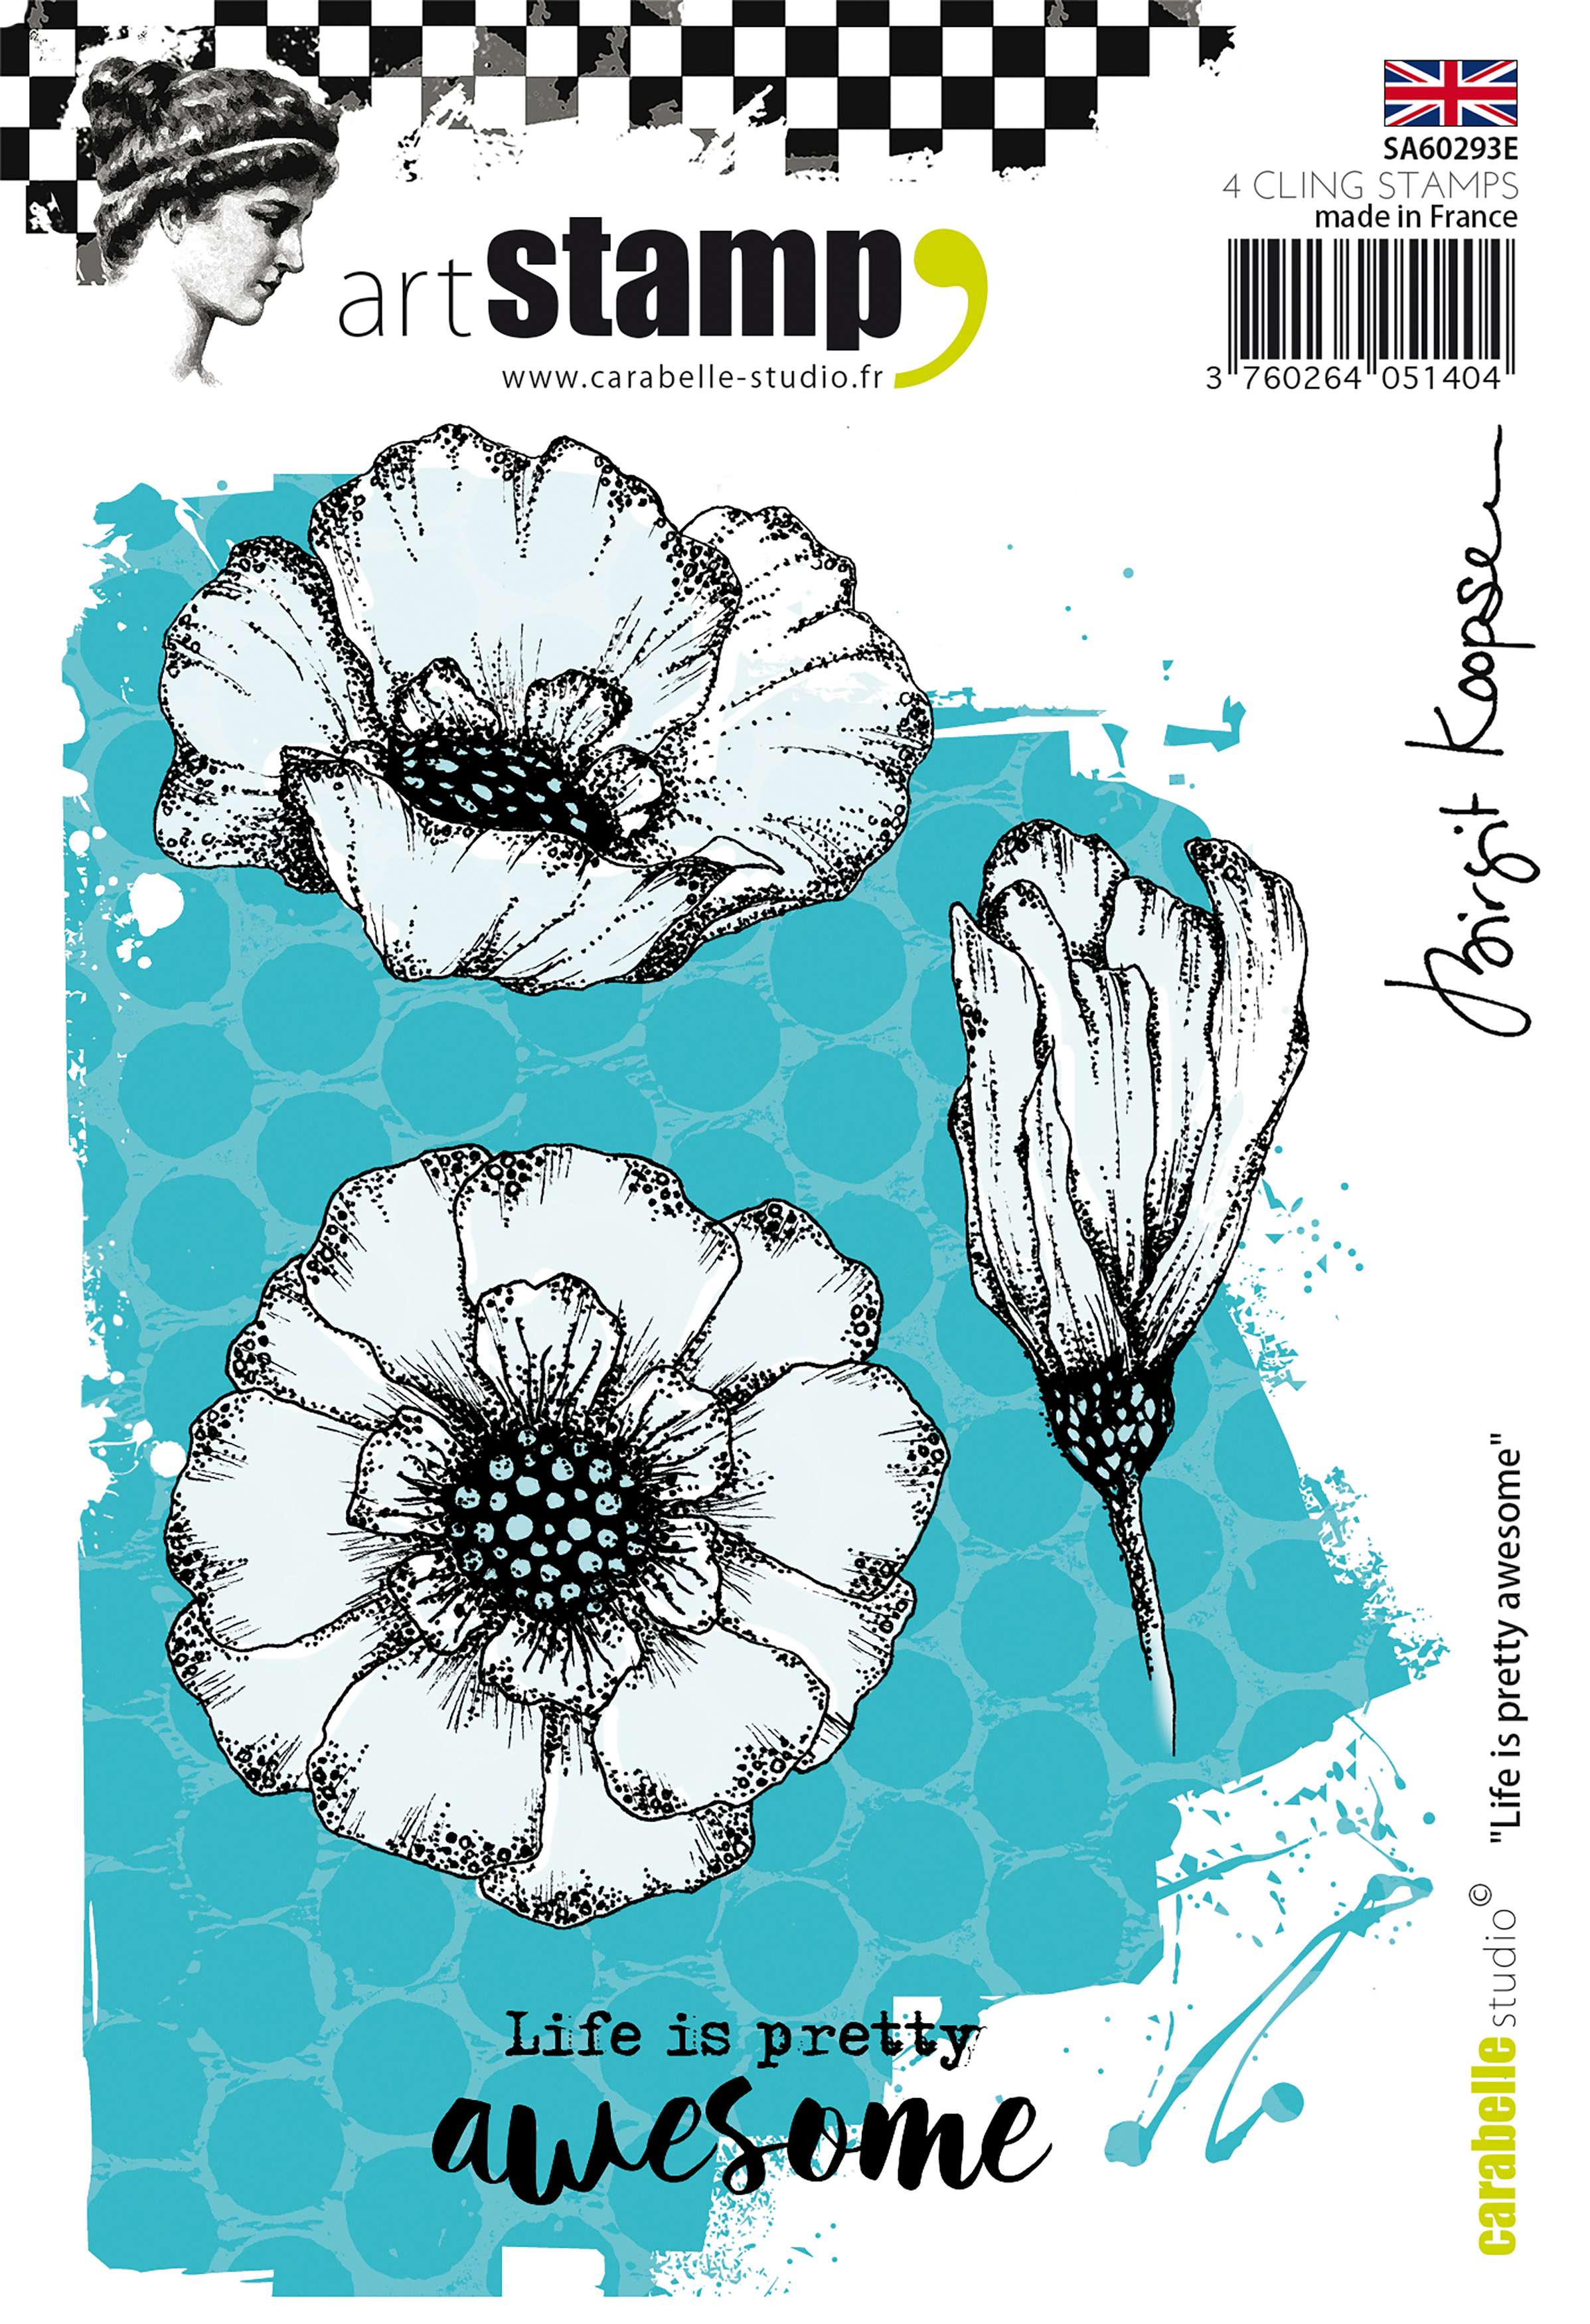 Life Is Pretty Awesome - Carabelle Studio Cling Stamp A6 By Birgit Koopsen